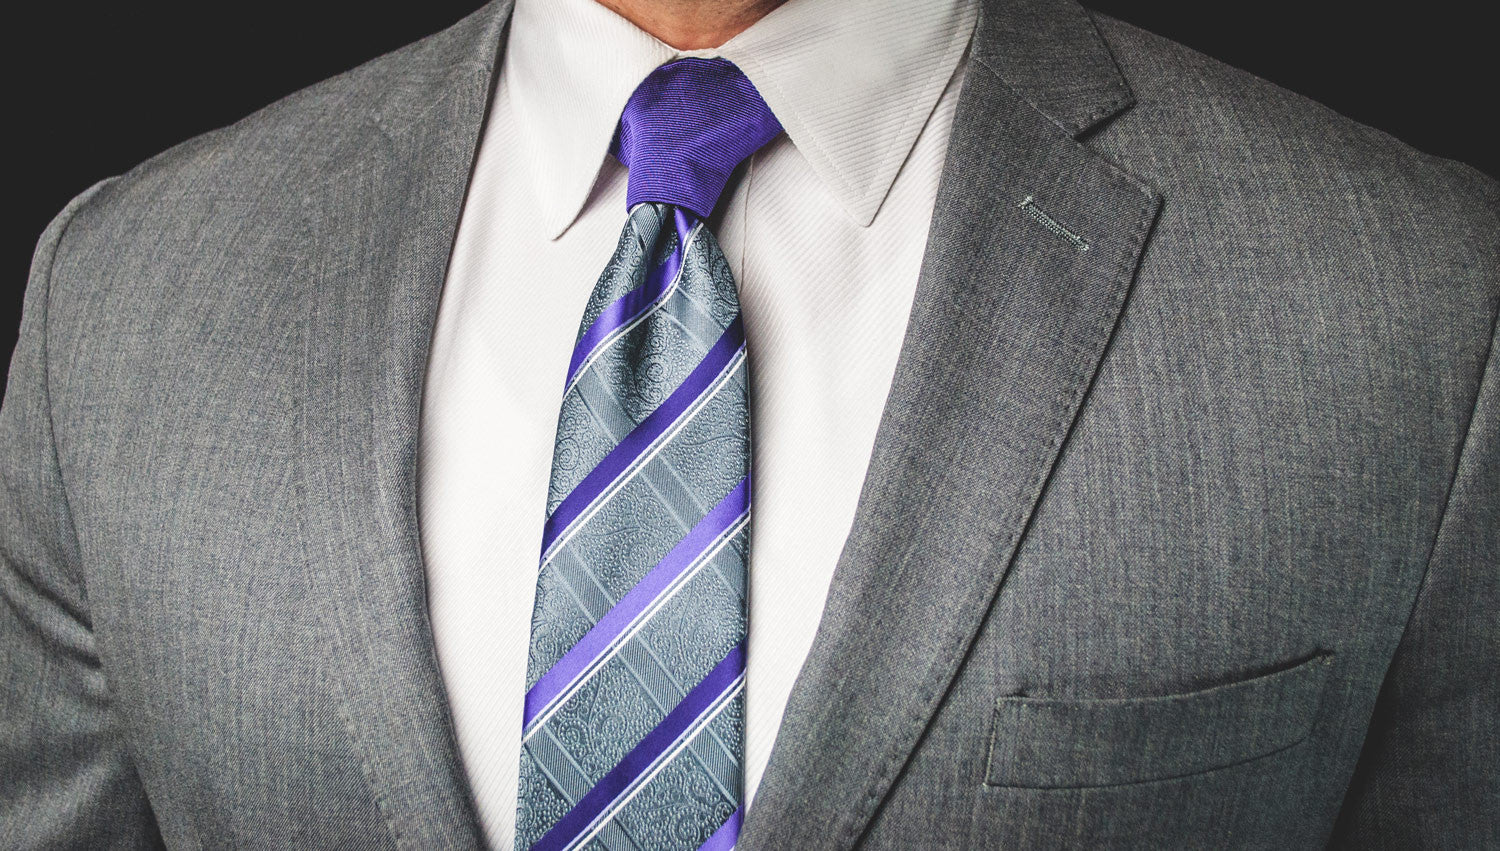 The Purple Proper Knot™